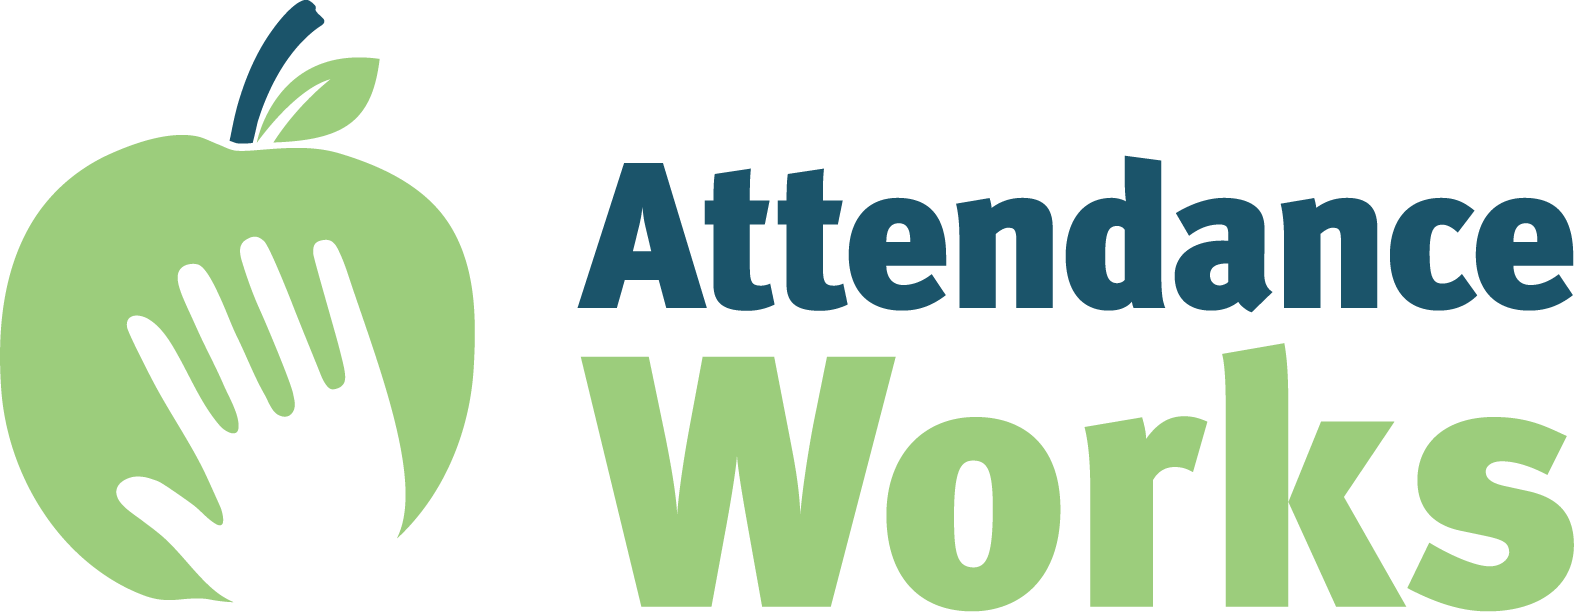 AttendanceWorks (2019) - Writing truancy notices that can improve attendance. -